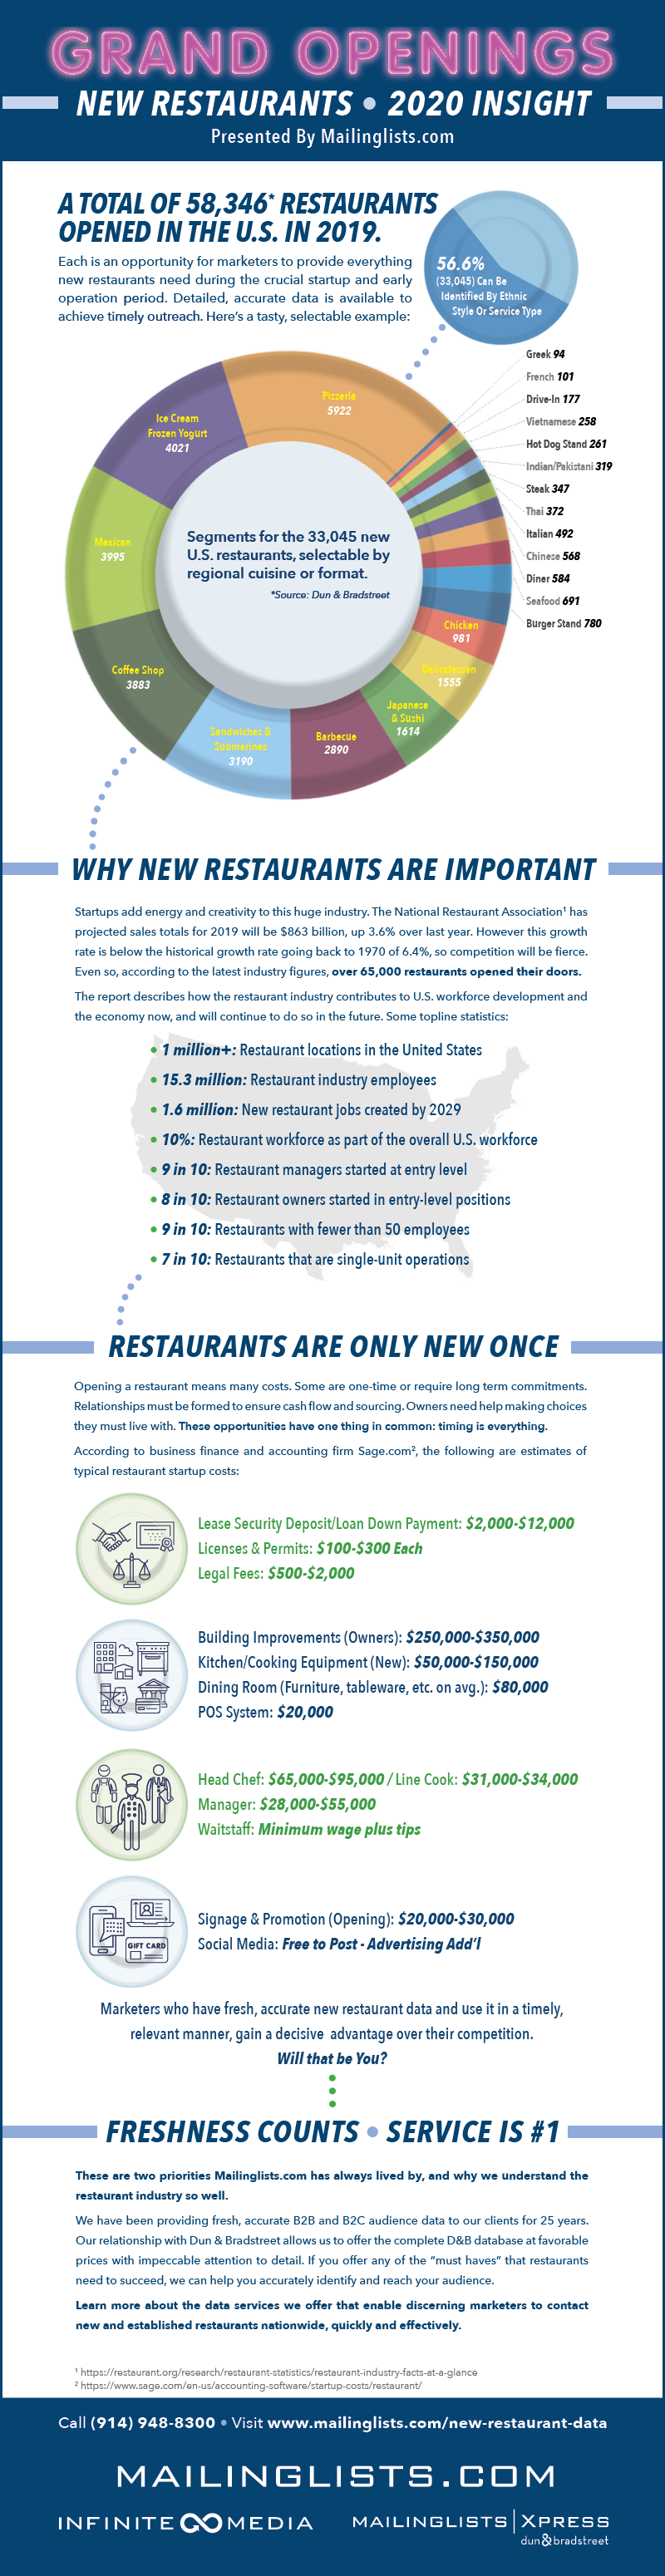 Reach New Restaurant Businesses in 2020